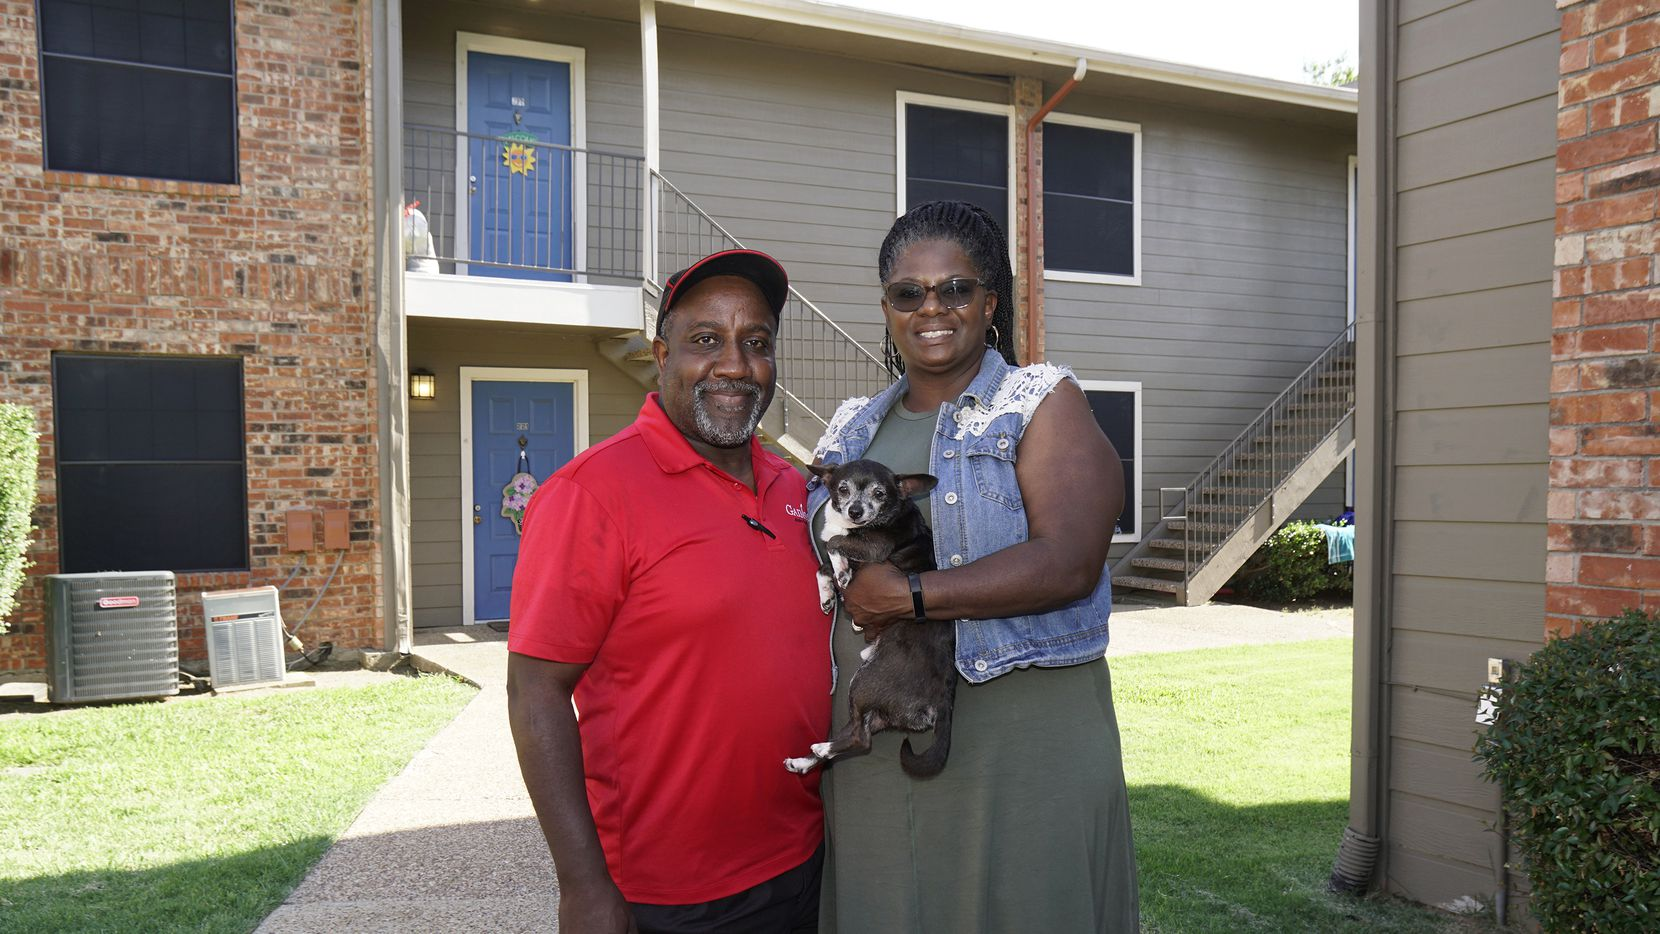 Carlon and Mary Shelton, with their dog Pickles, downsized to a three-bedroom, two-bath apartment in Irving after 28 years as homeowners. Without the maintenance and upkeep cost of a house, they save more money and do more for their children.